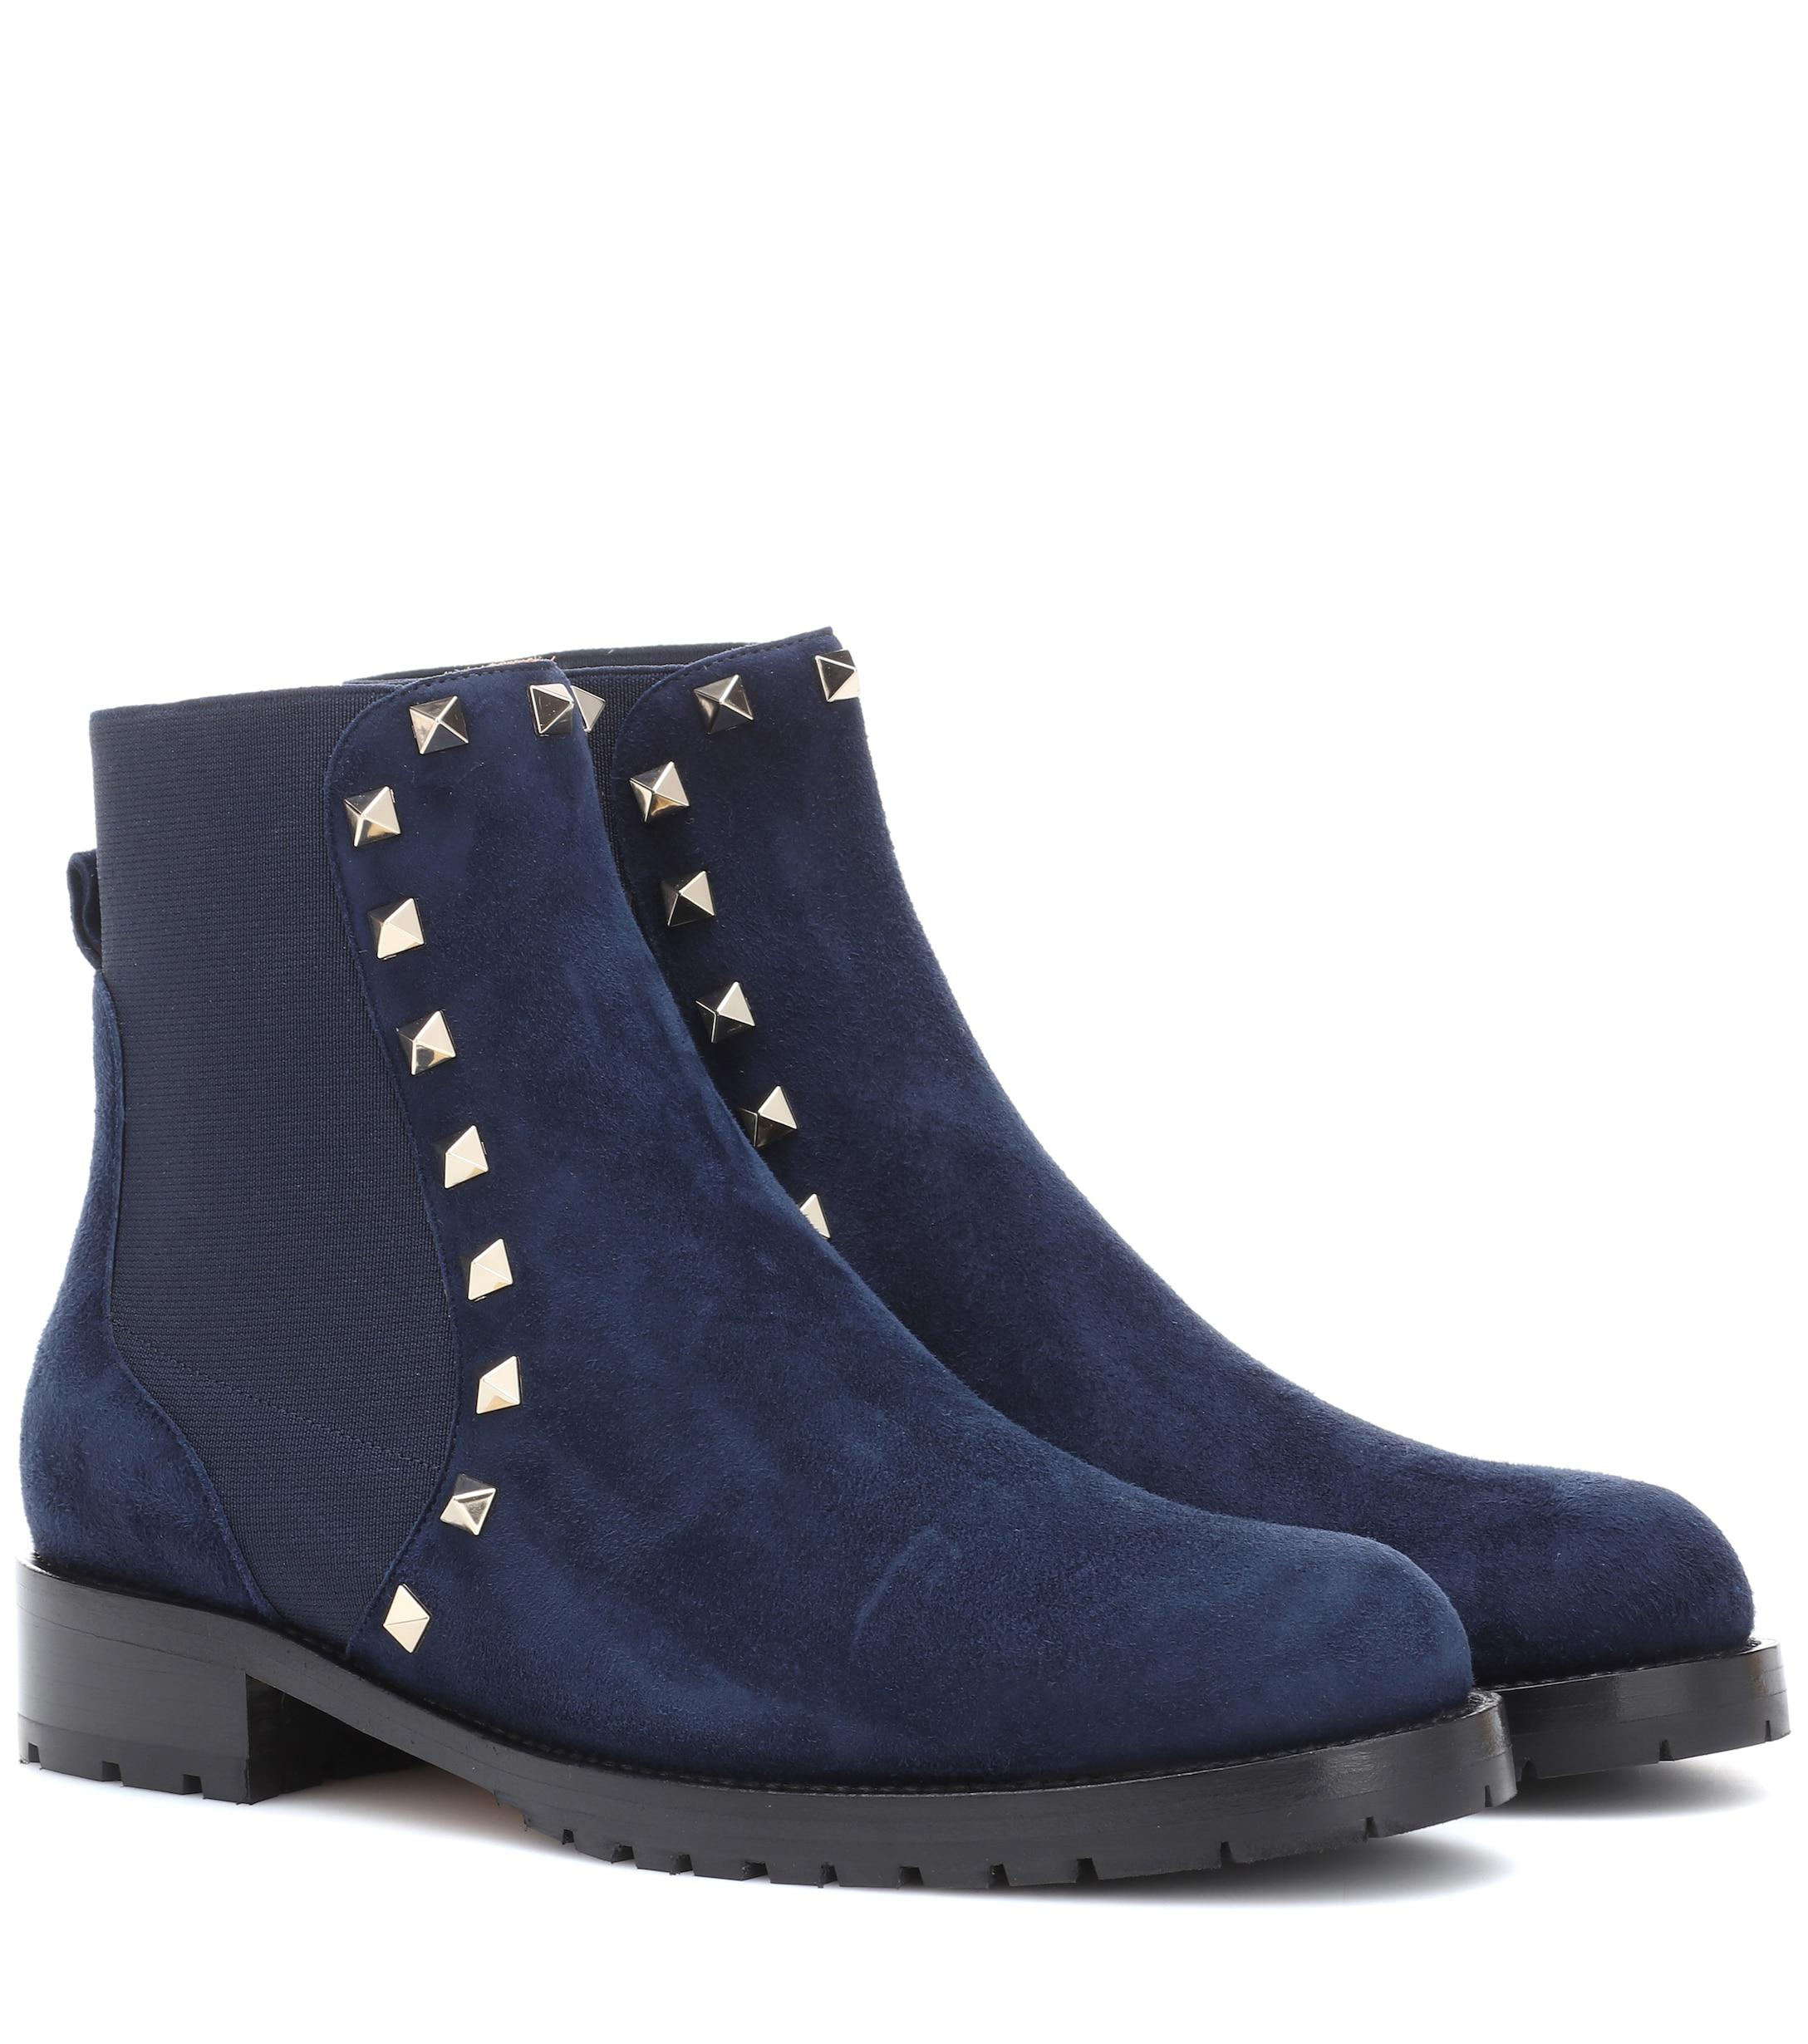 95a8f254ab68d Lyst - Valentino Rockstud Suede Ankle Boots in Blue